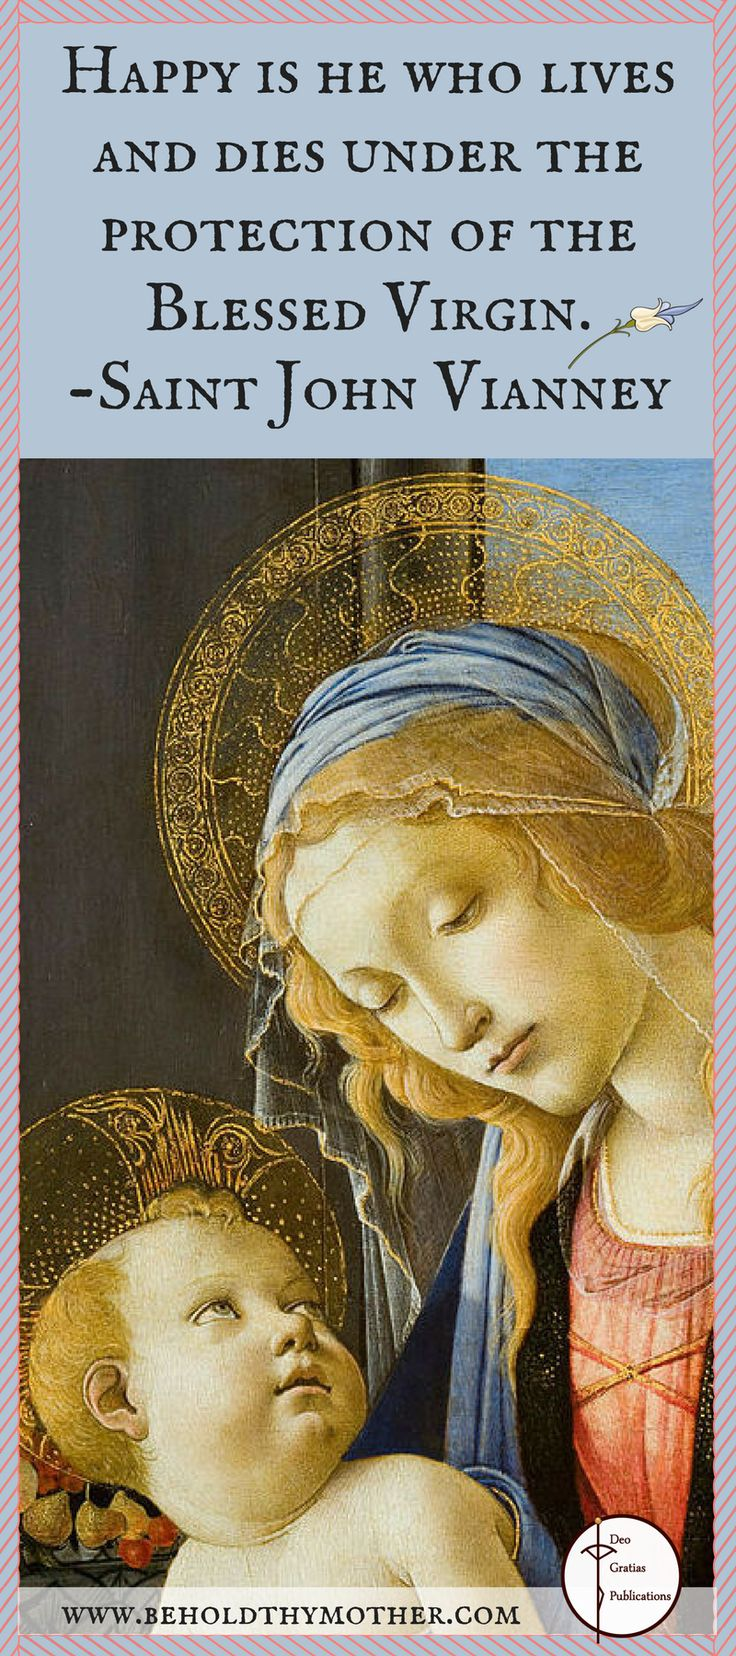 """""""Behold Thy Mother"""", a Scriptural Rosary book, is steeped in beauty and tradition with sacred art, meditations by Church fathers, popes, saints and esteemed Catholic theologians, a side by side English/Latin translation of the Scripture verses, and medieval graphics. This beautiful Catholic prayer book is stamped with an imprimatur by Most Reverend Peter F. Christensen, Bishop of the Diocese of Boise and has received 5 star reviews. This painting is by Sandro Botticelli."""